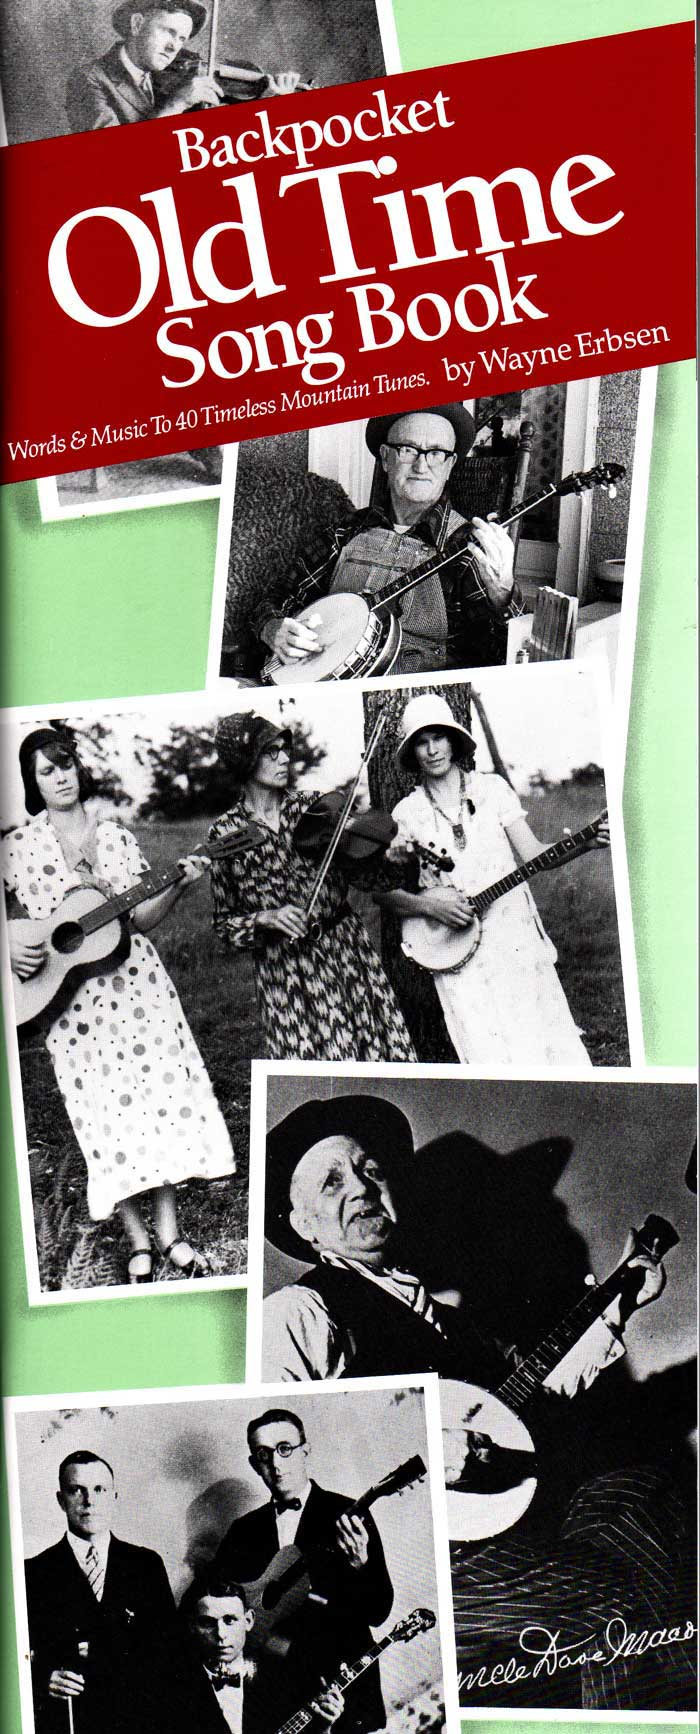 Backpocket Old-Time Songbook by Wayne Erbsen